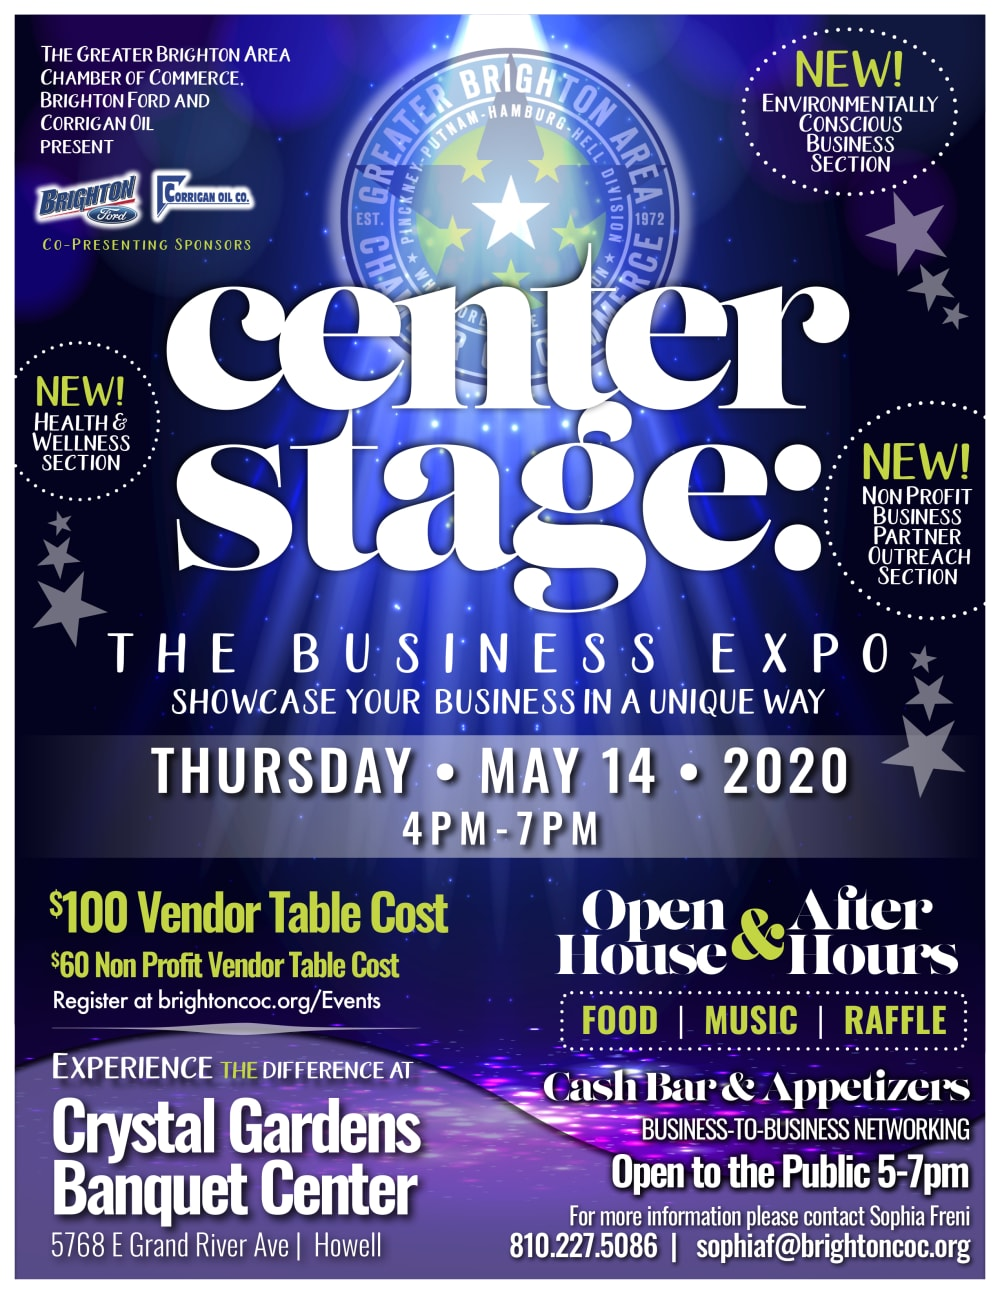 Center Stage Business Exp0 2020